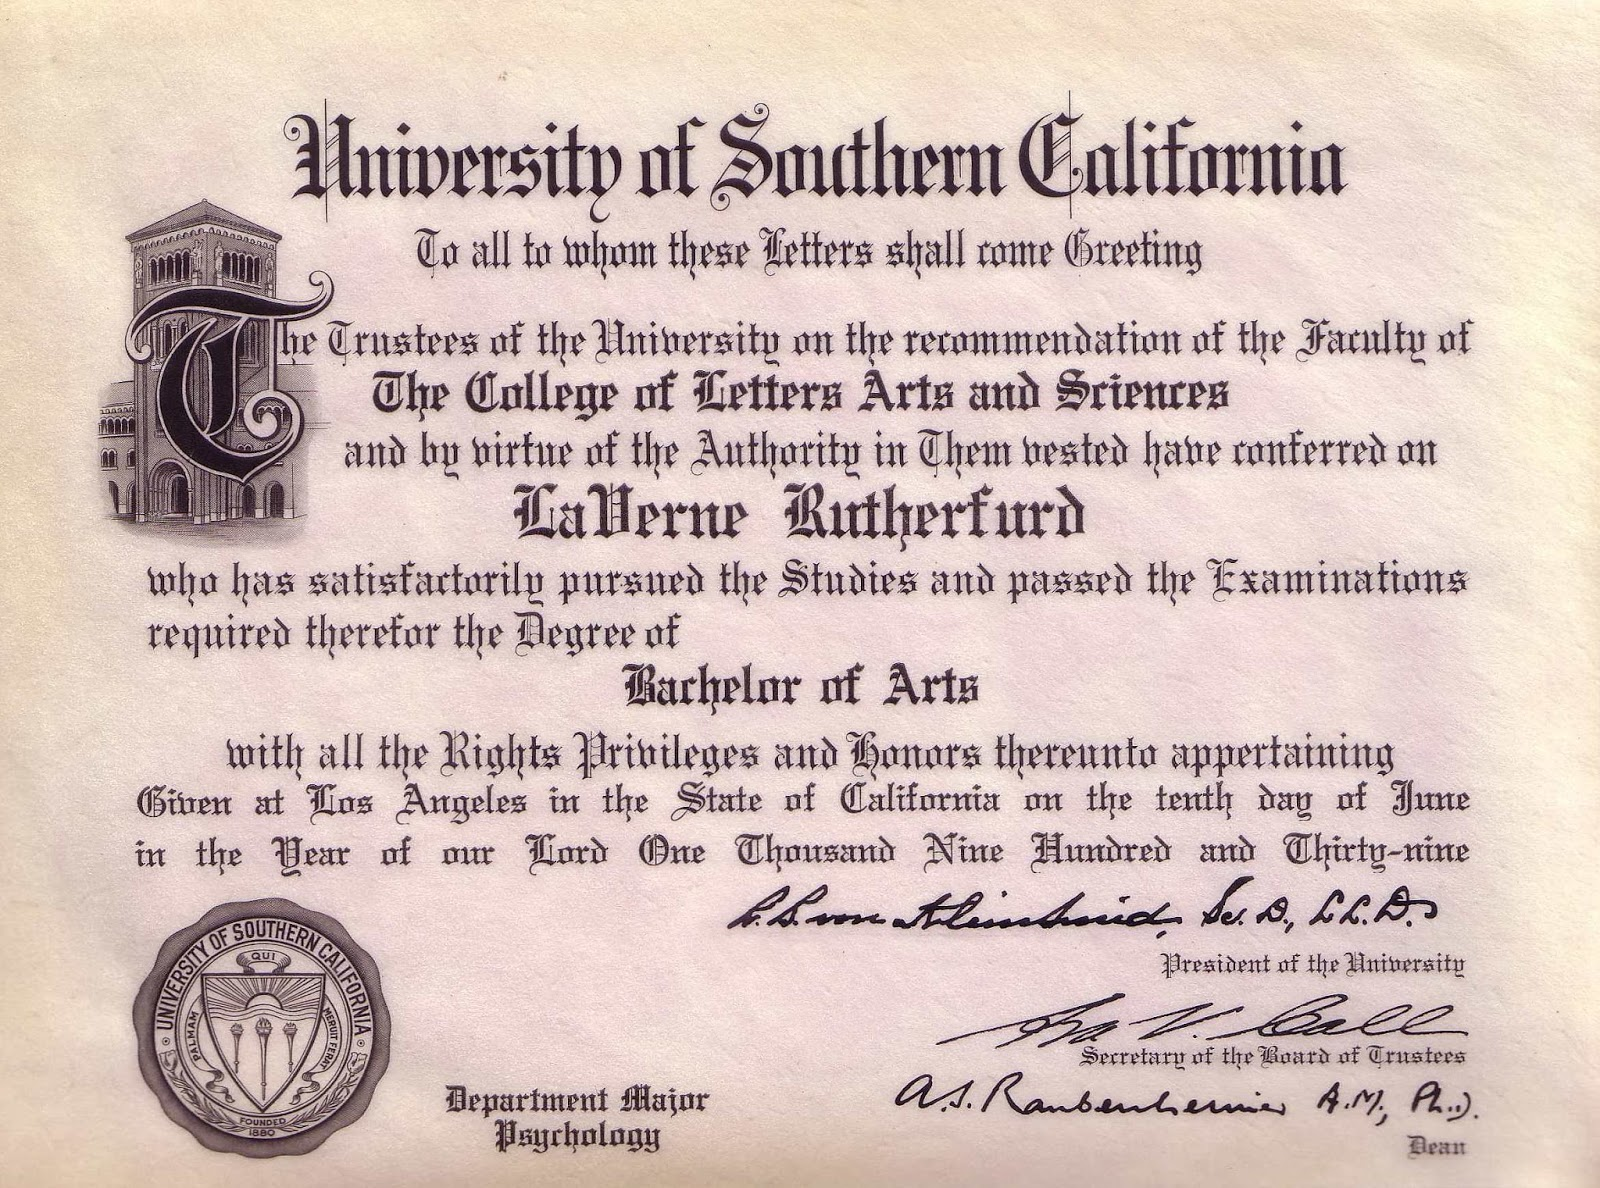 know their stories grandma s university diploma laverne rutherfurd received her diploma from the university of southern california on 10 1939 she graduated a bachelor of arts from the college